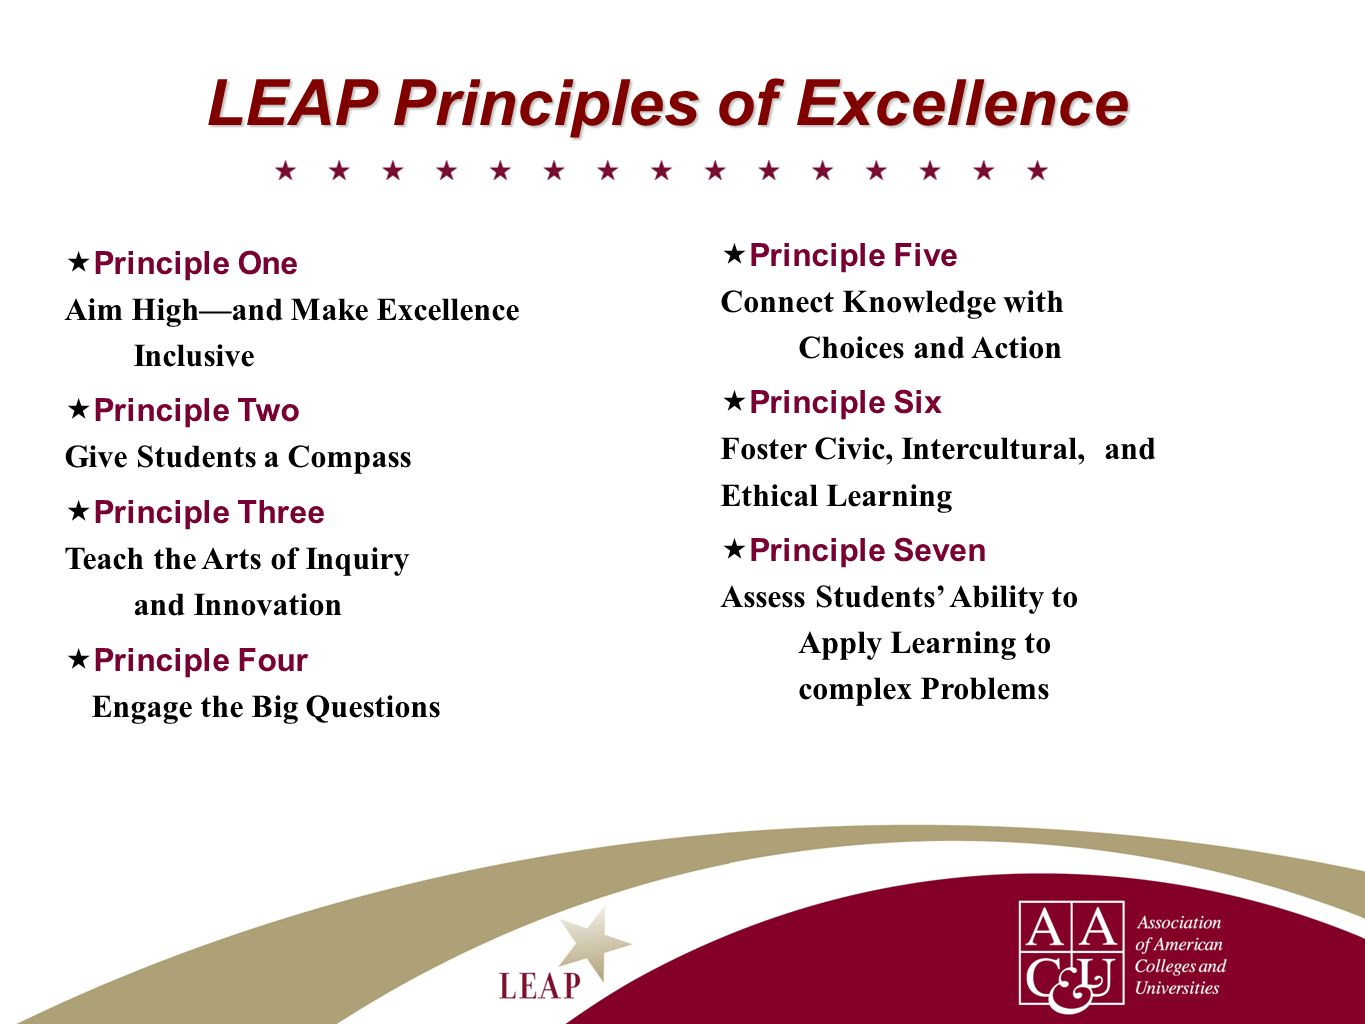 LEAP Principles of Excellence Principle One Aim Highand Make Excellence Inclusive Principle Two Give Students a Compass Principle Three Teach the Arts of Inquiry and Innovation Principle Four Engage the Big Questions Principle Five Connect Knowledge with Choices and Action Principle Six Foster Civic, Intercultural,and Ethical Learning Principle Seven Assess Students Ability to Apply Learning to complex Problems